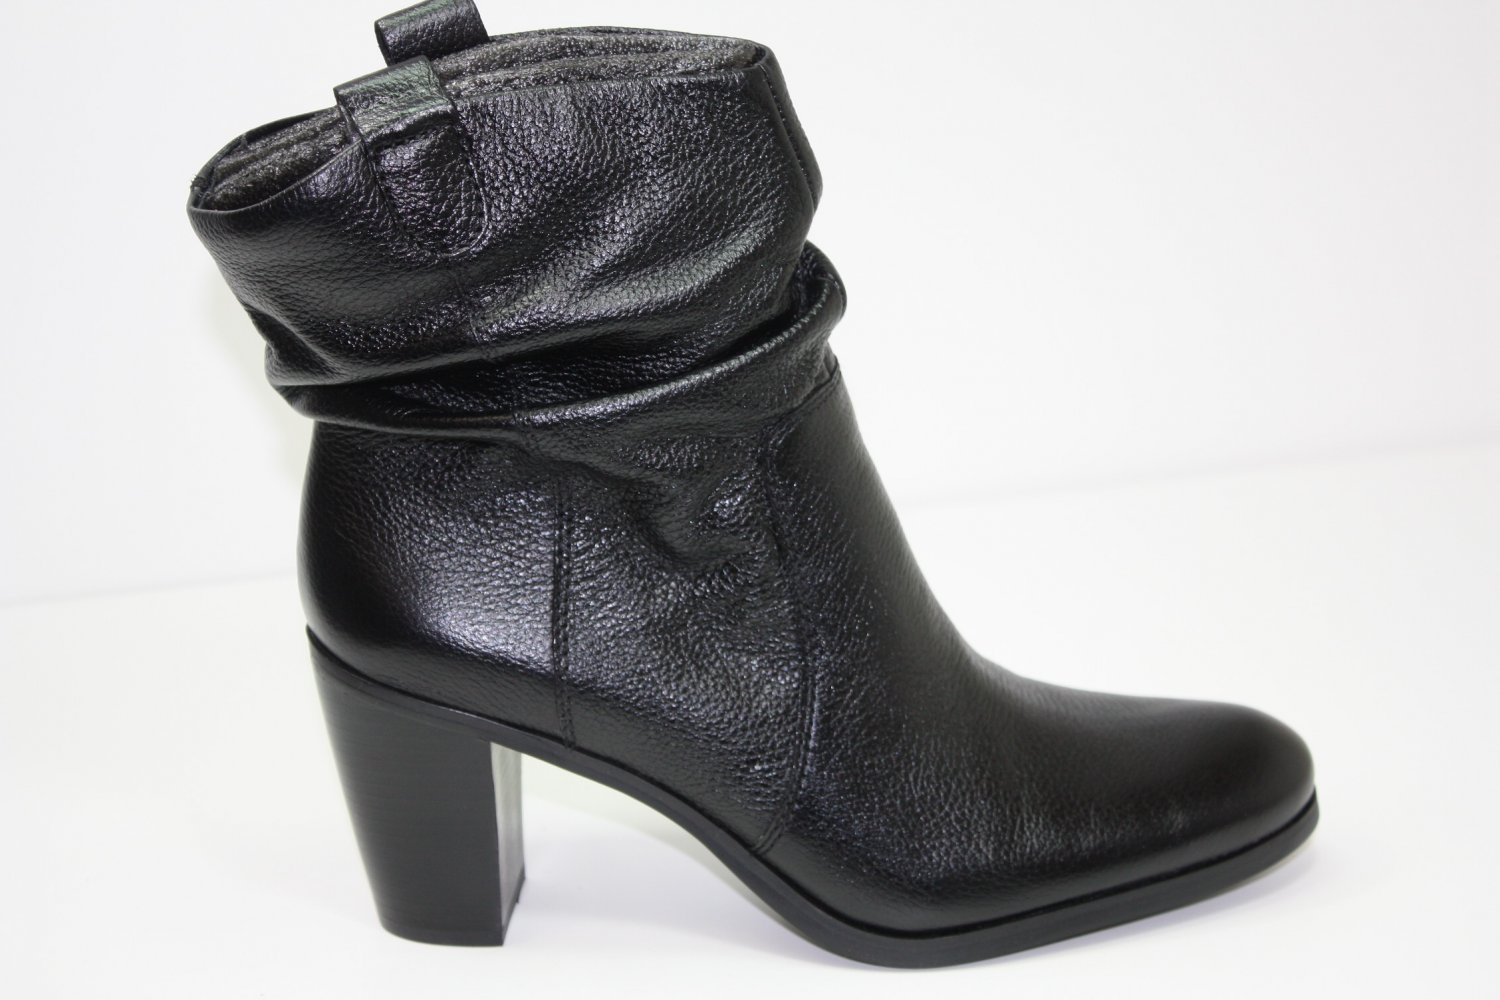 Circa Joan&David Kirstin Boots Black Shoes US 9.5 $139